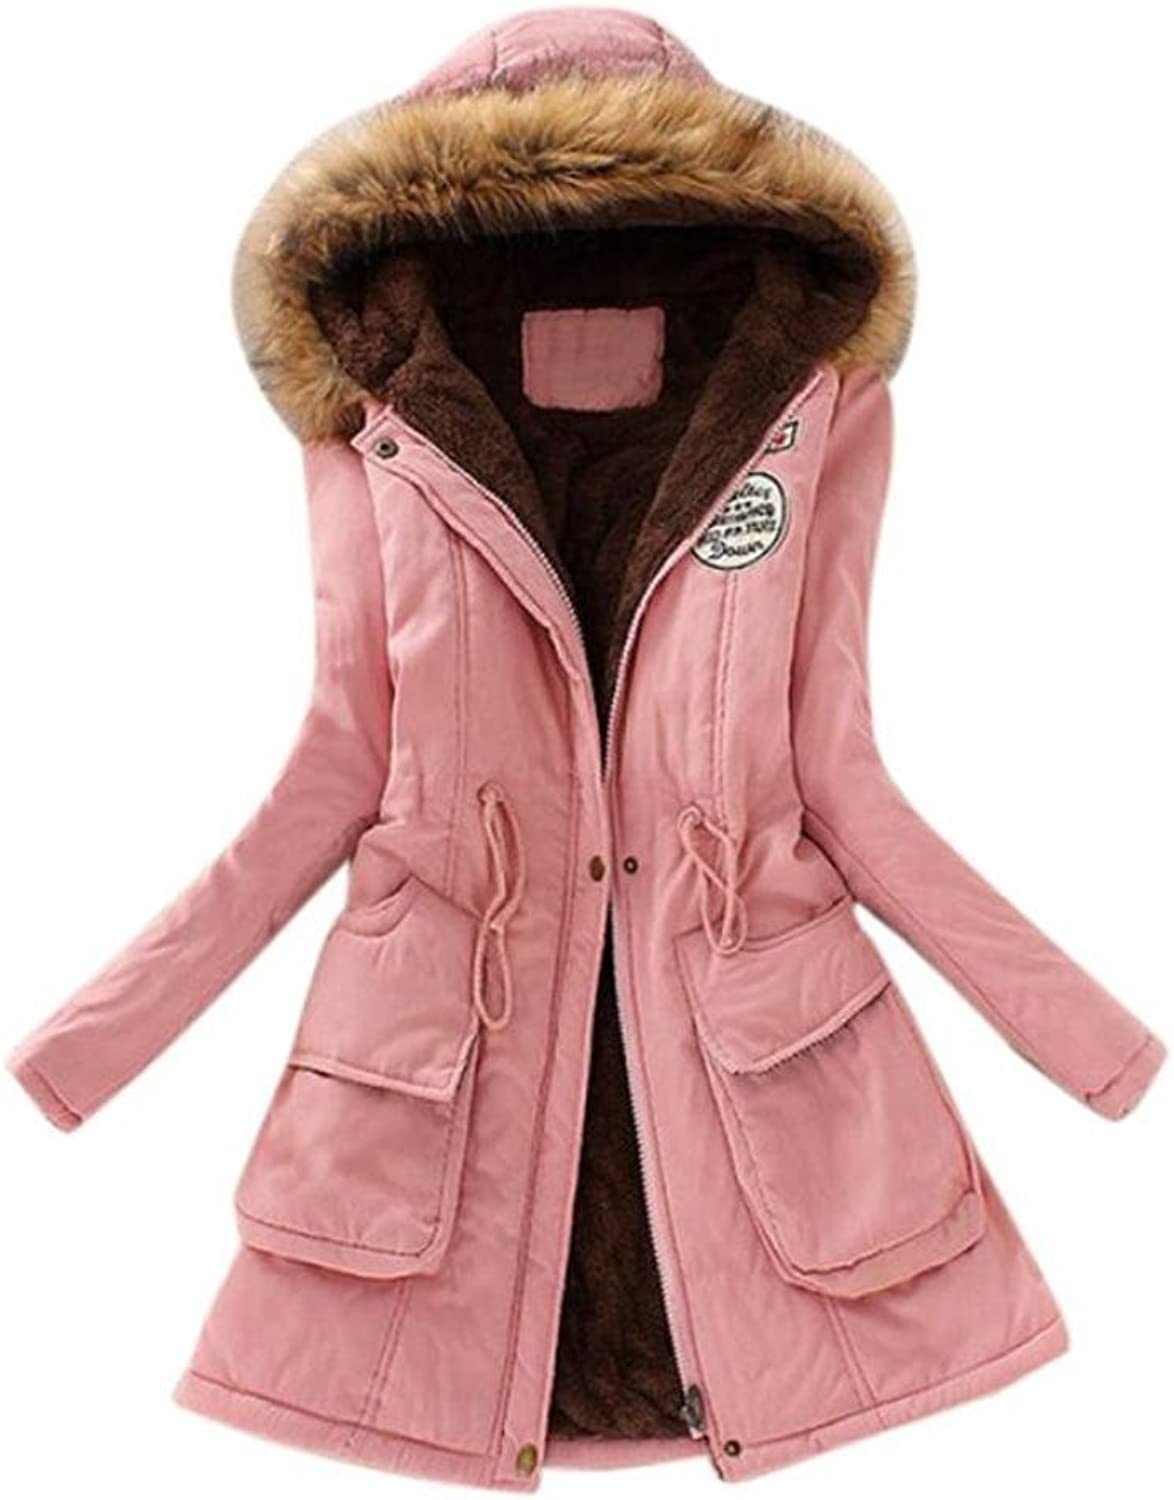 BCDshop Coat Women Winter, Ladies Long Hooded Warm Coats Parkas with Faux Fur Outwear